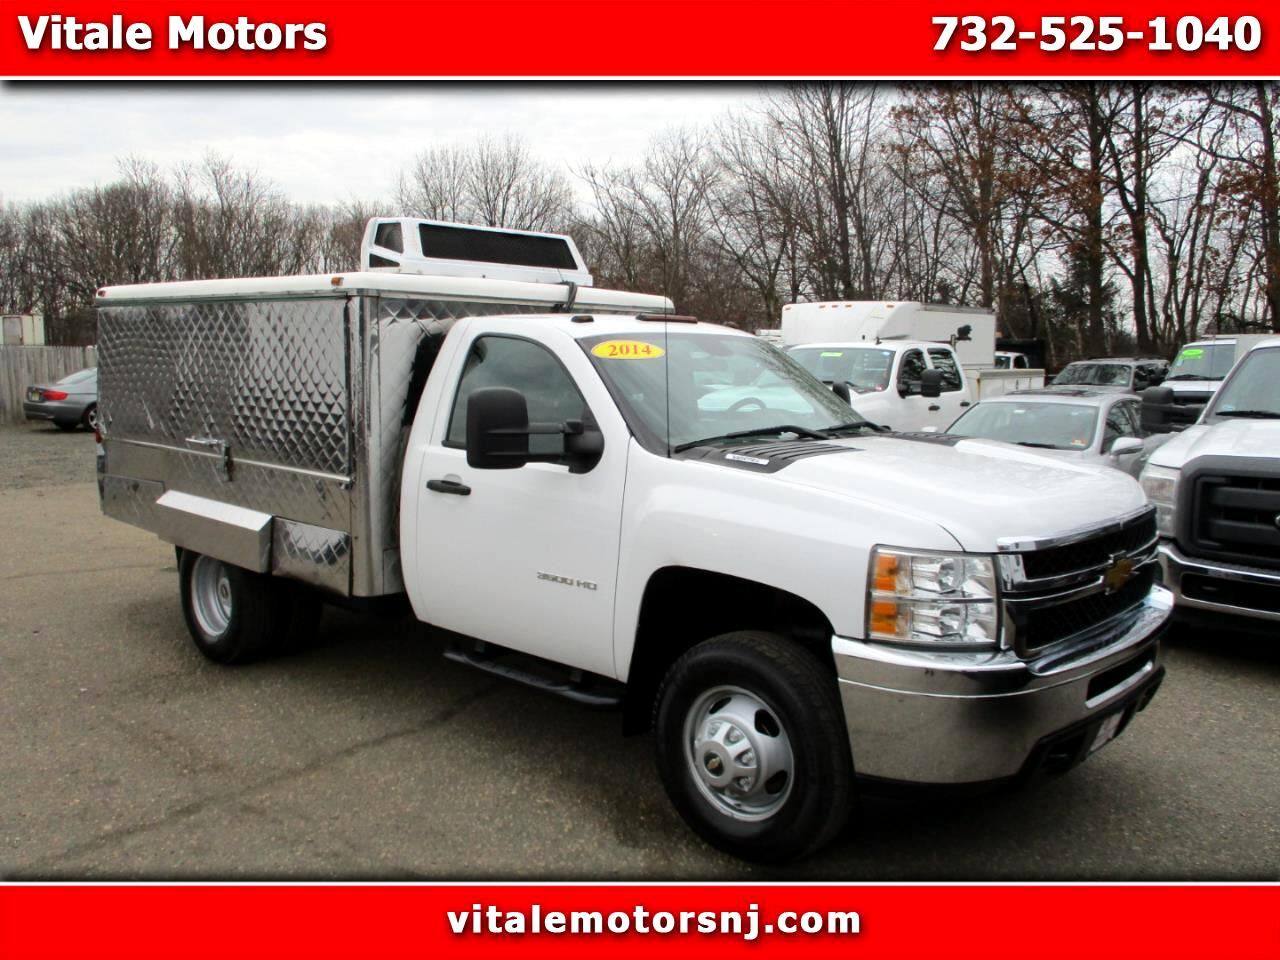 2014 Chevrolet Silverado 3500HD LUNCH TRUCK, FOOD TRUCK, 51K MILES!